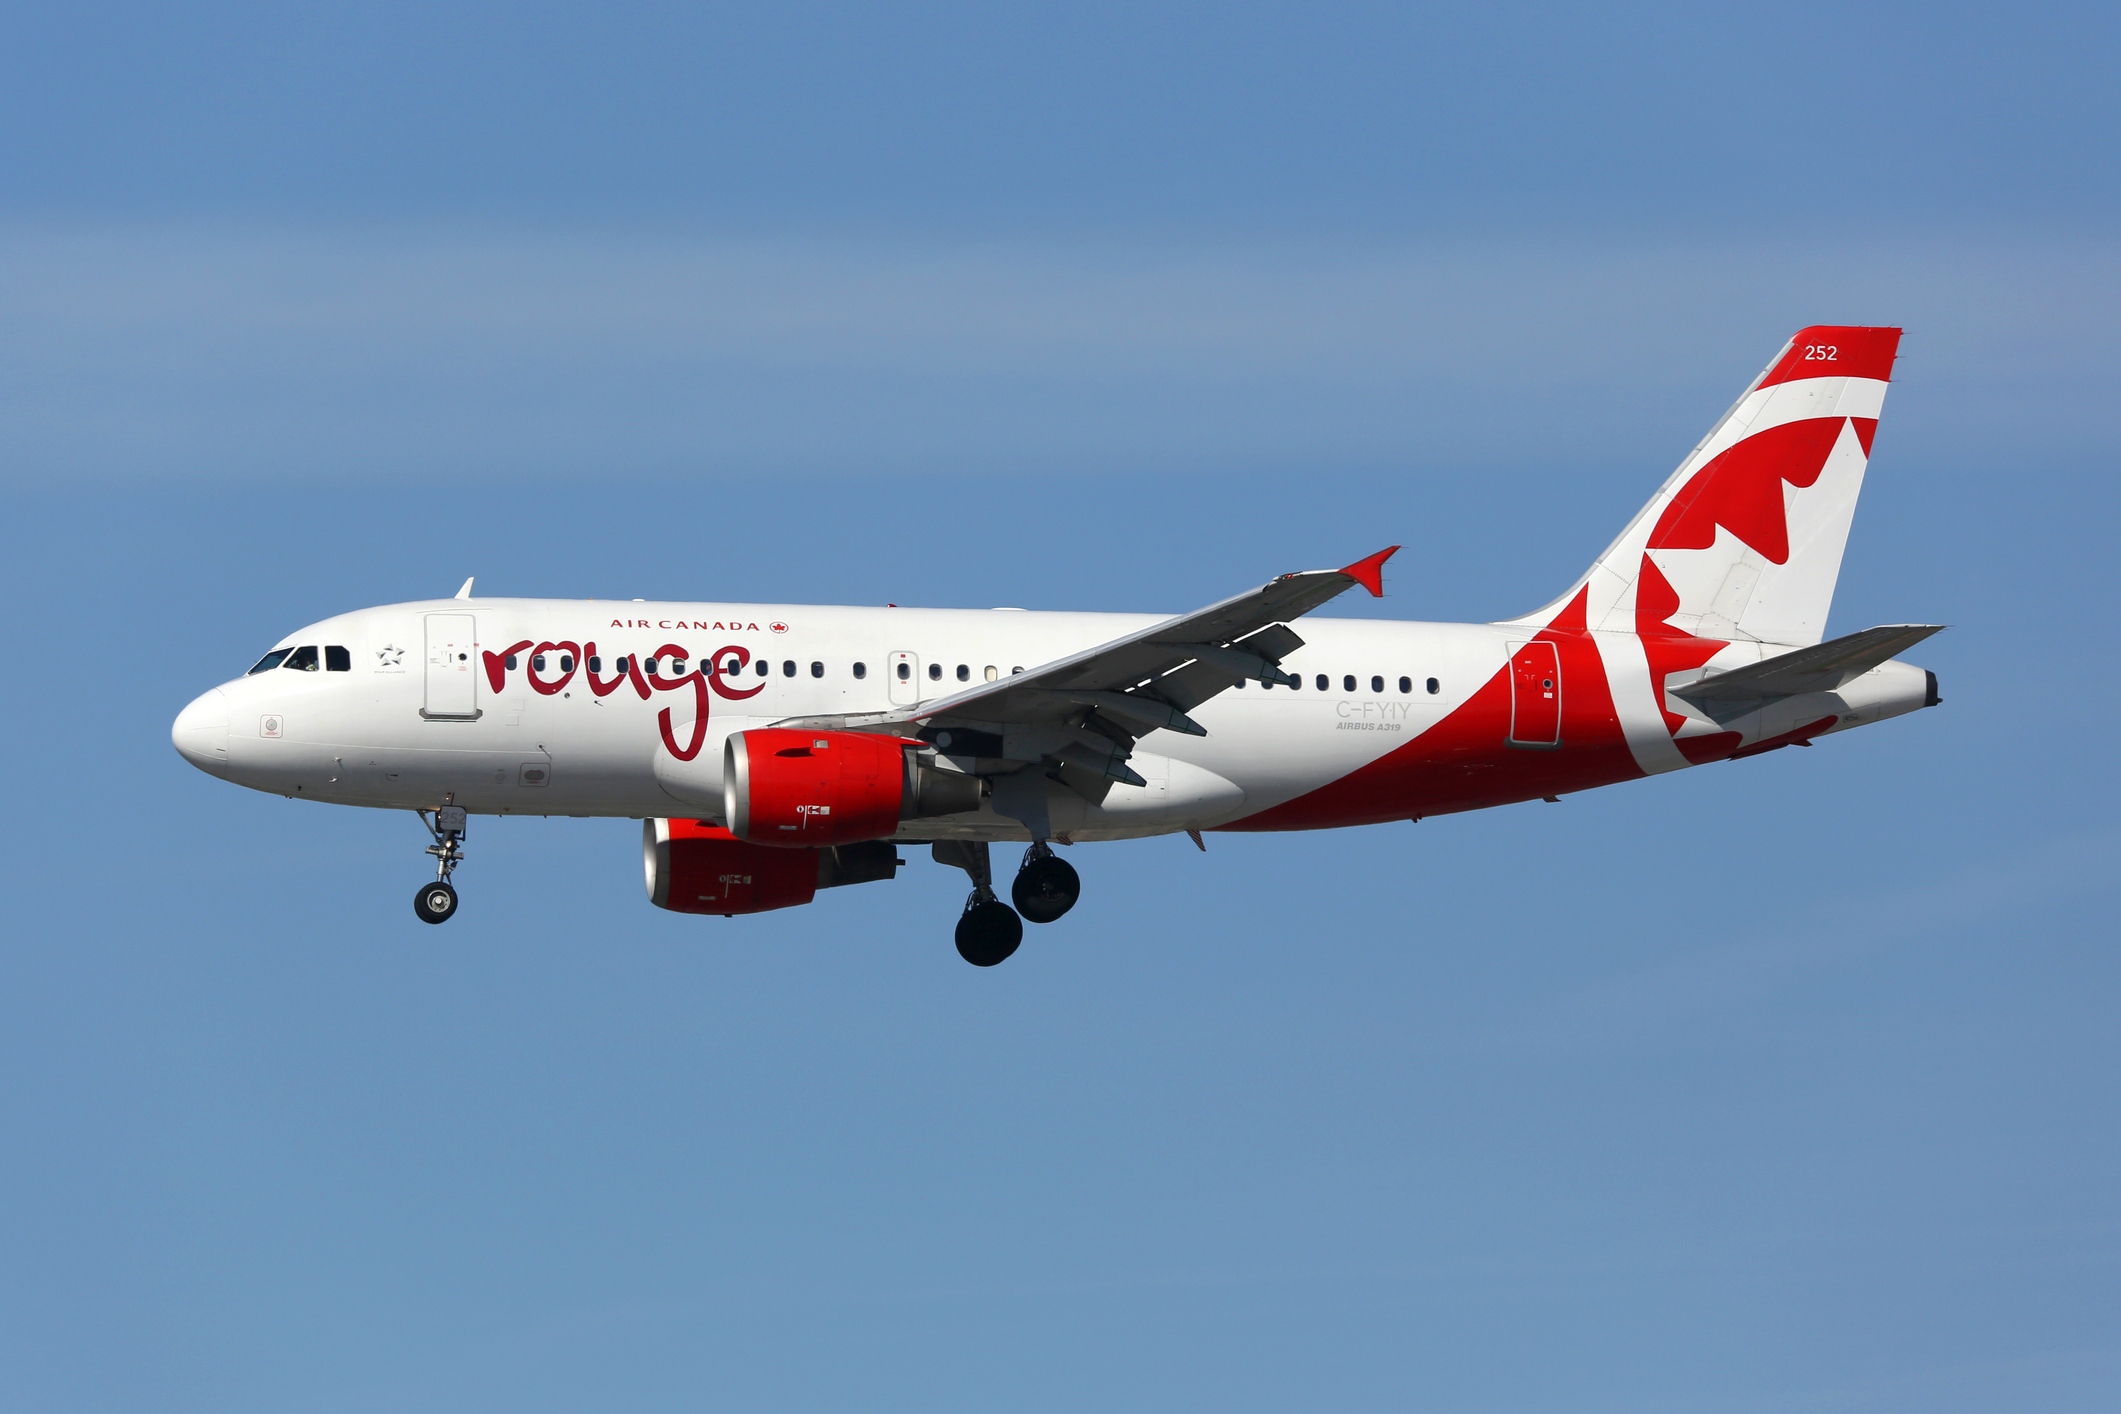 Air Canada Rouge Suspends All Flights Amid New Travel Restrictions